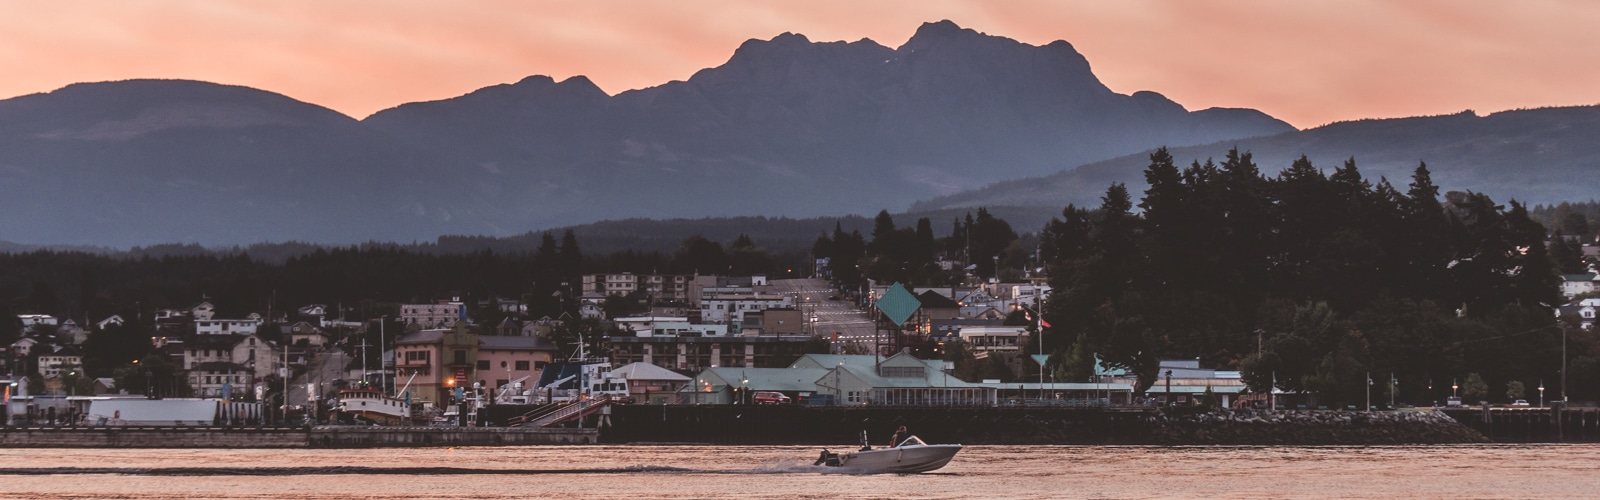 Port Alberni Salmon Fishing Capital of BC